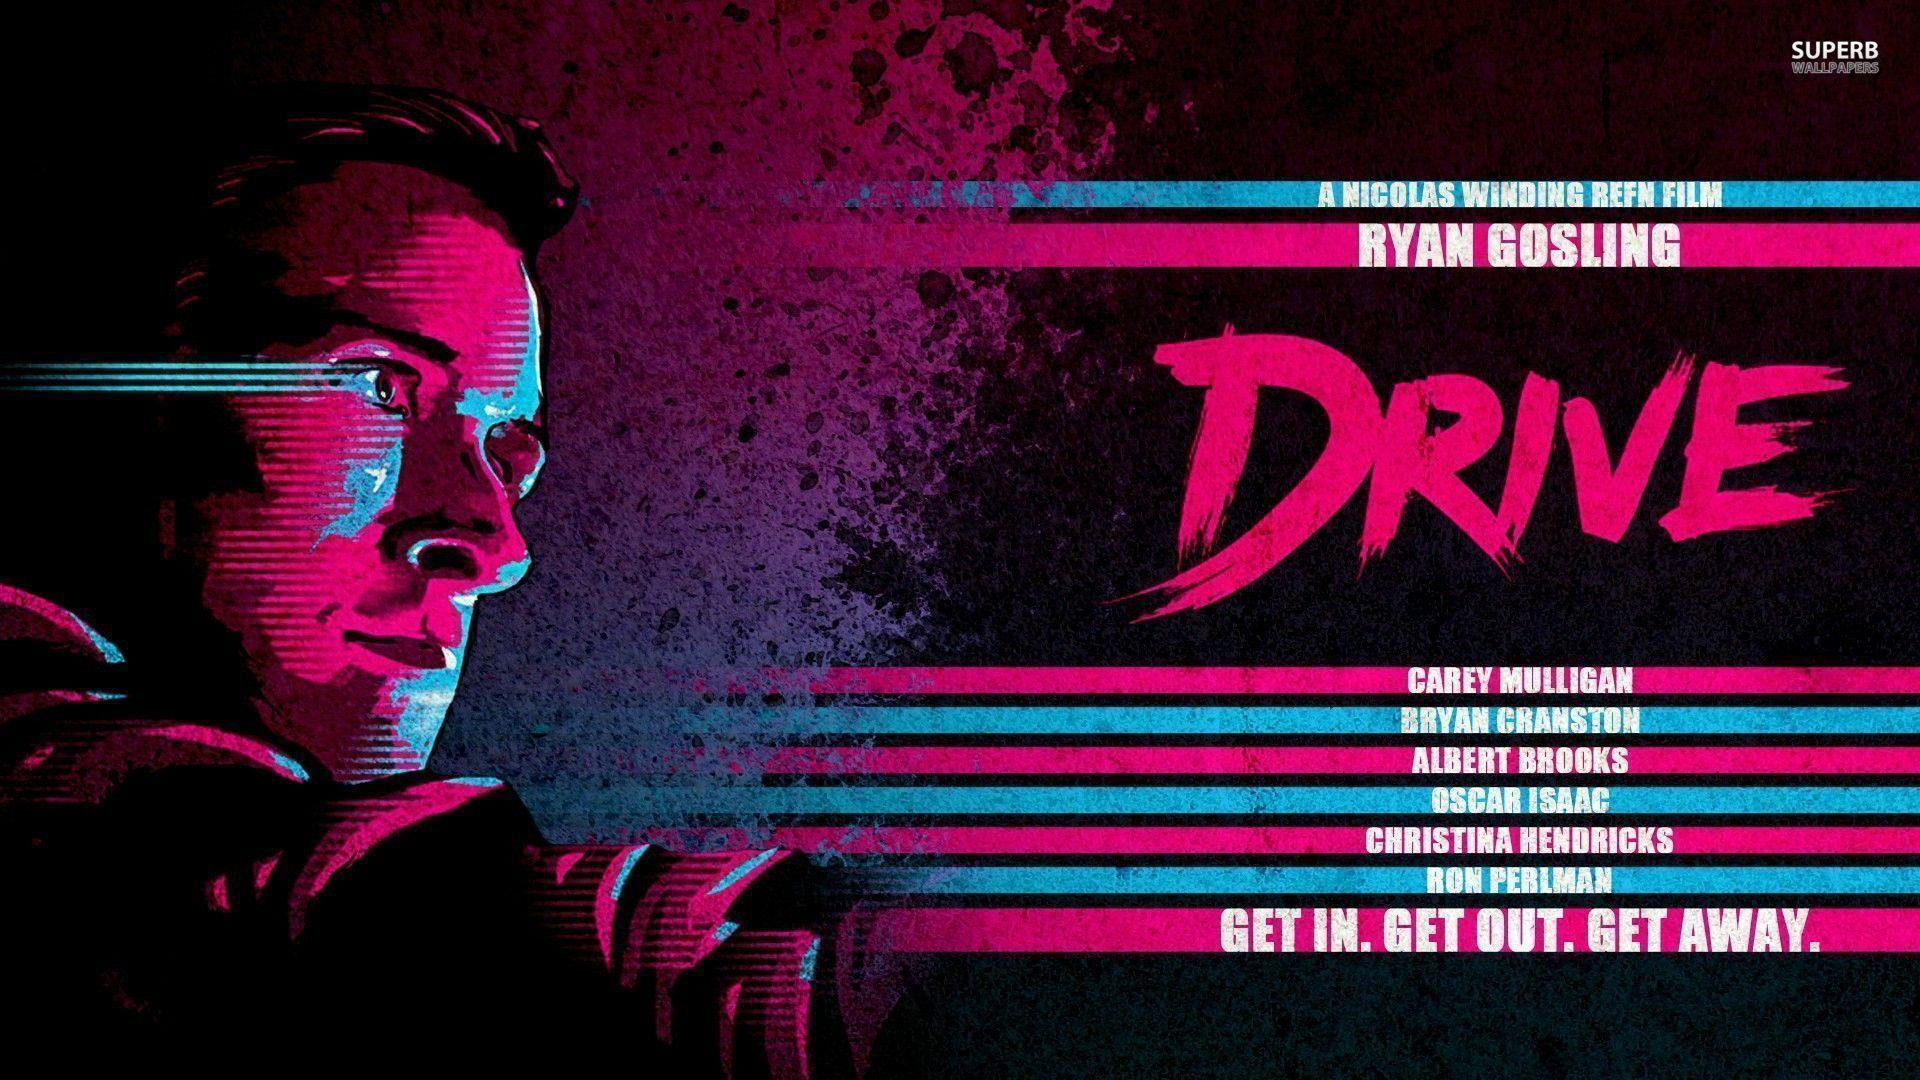 drive movie wallpaper images - photo #2